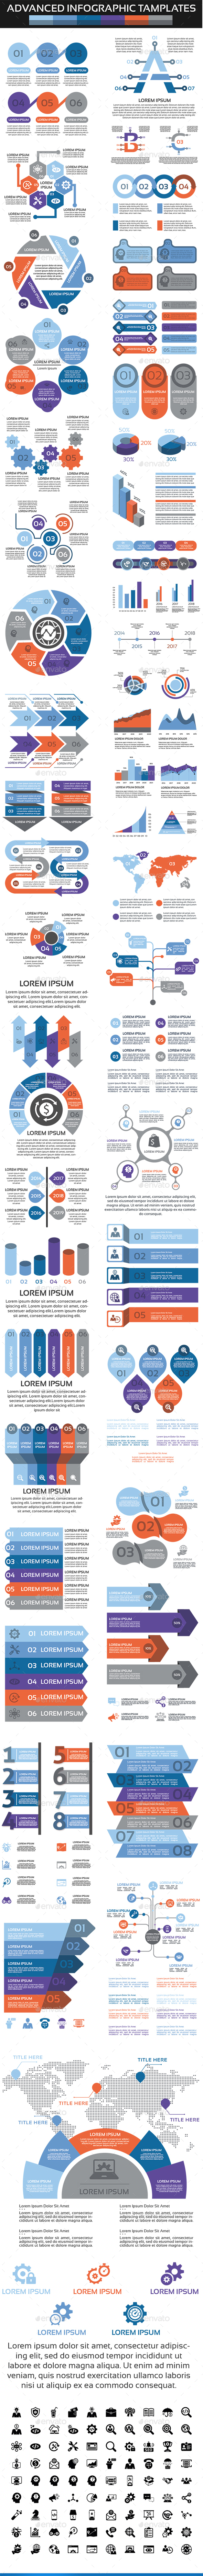 GraphicRiver Advanced Infographic Elements 20628989